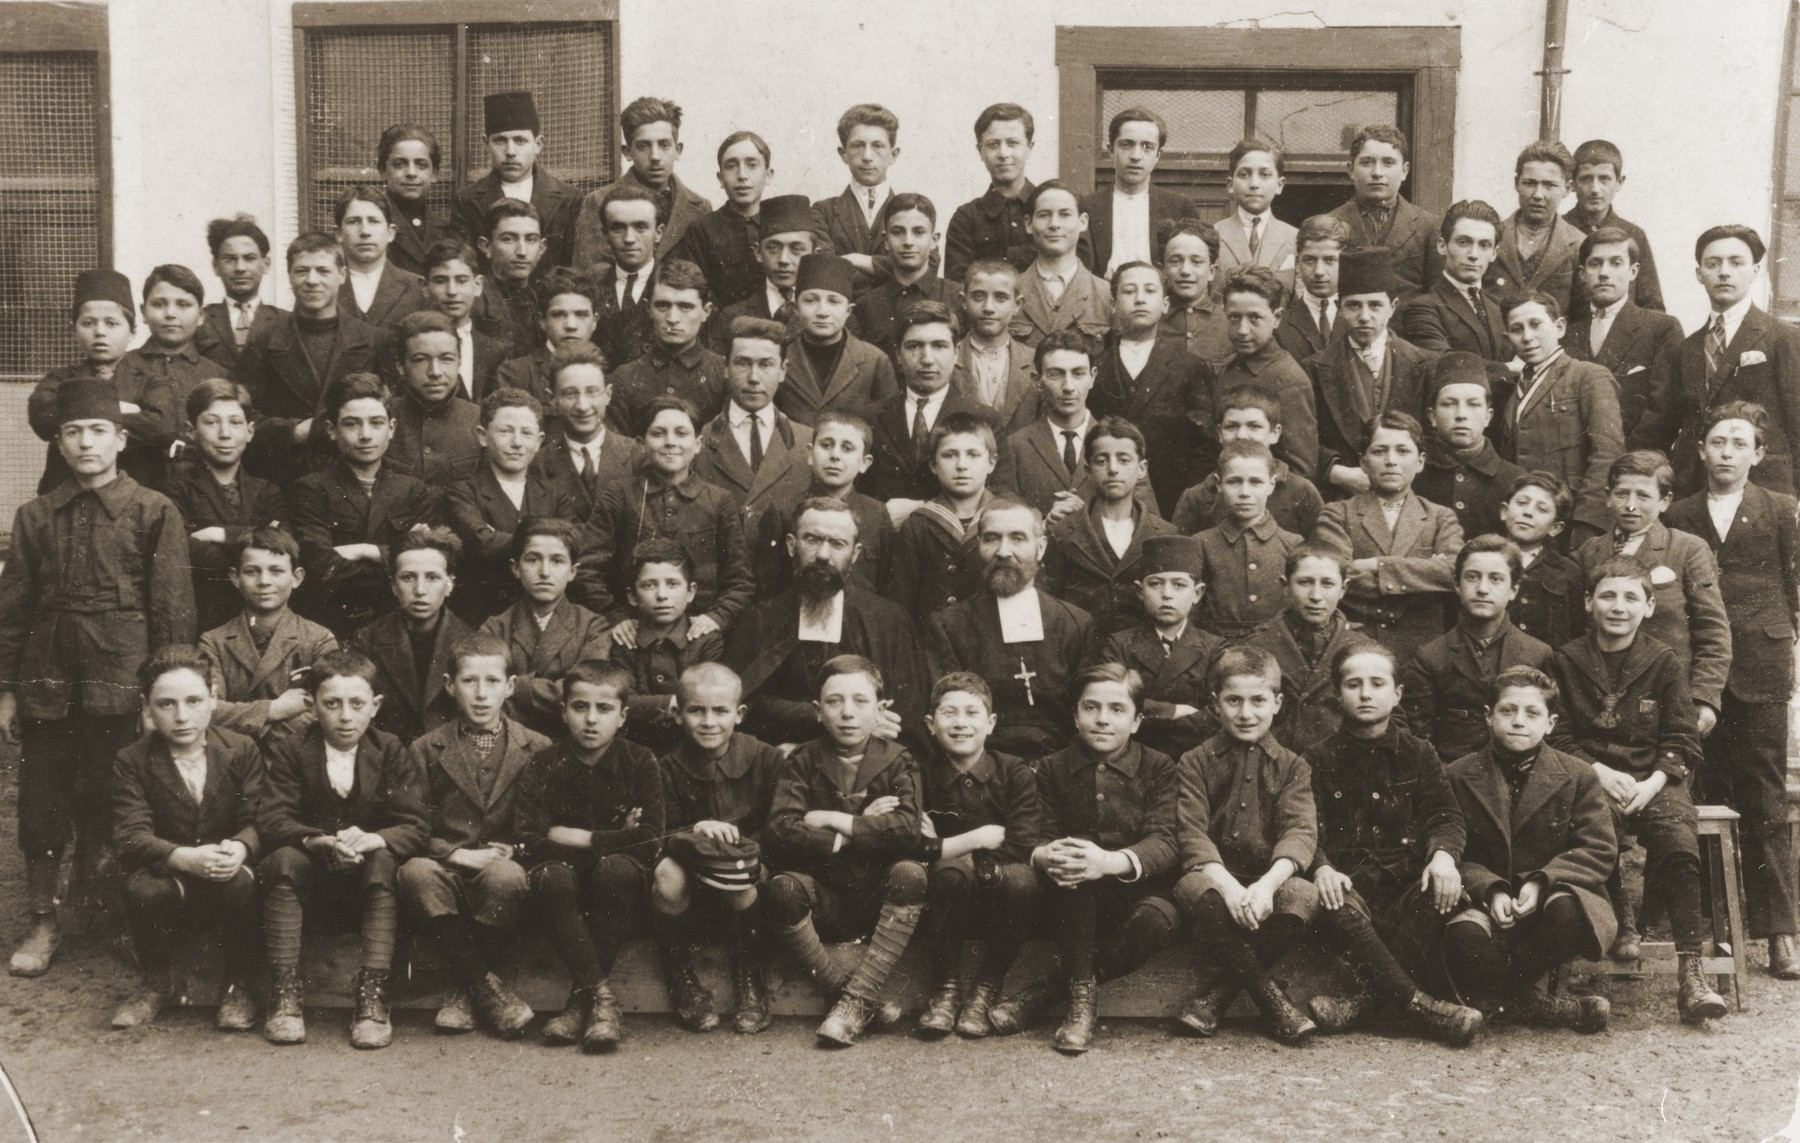 Class portrait at a school in Bitola, Macedonia, attended by both Jews and non-Jews.